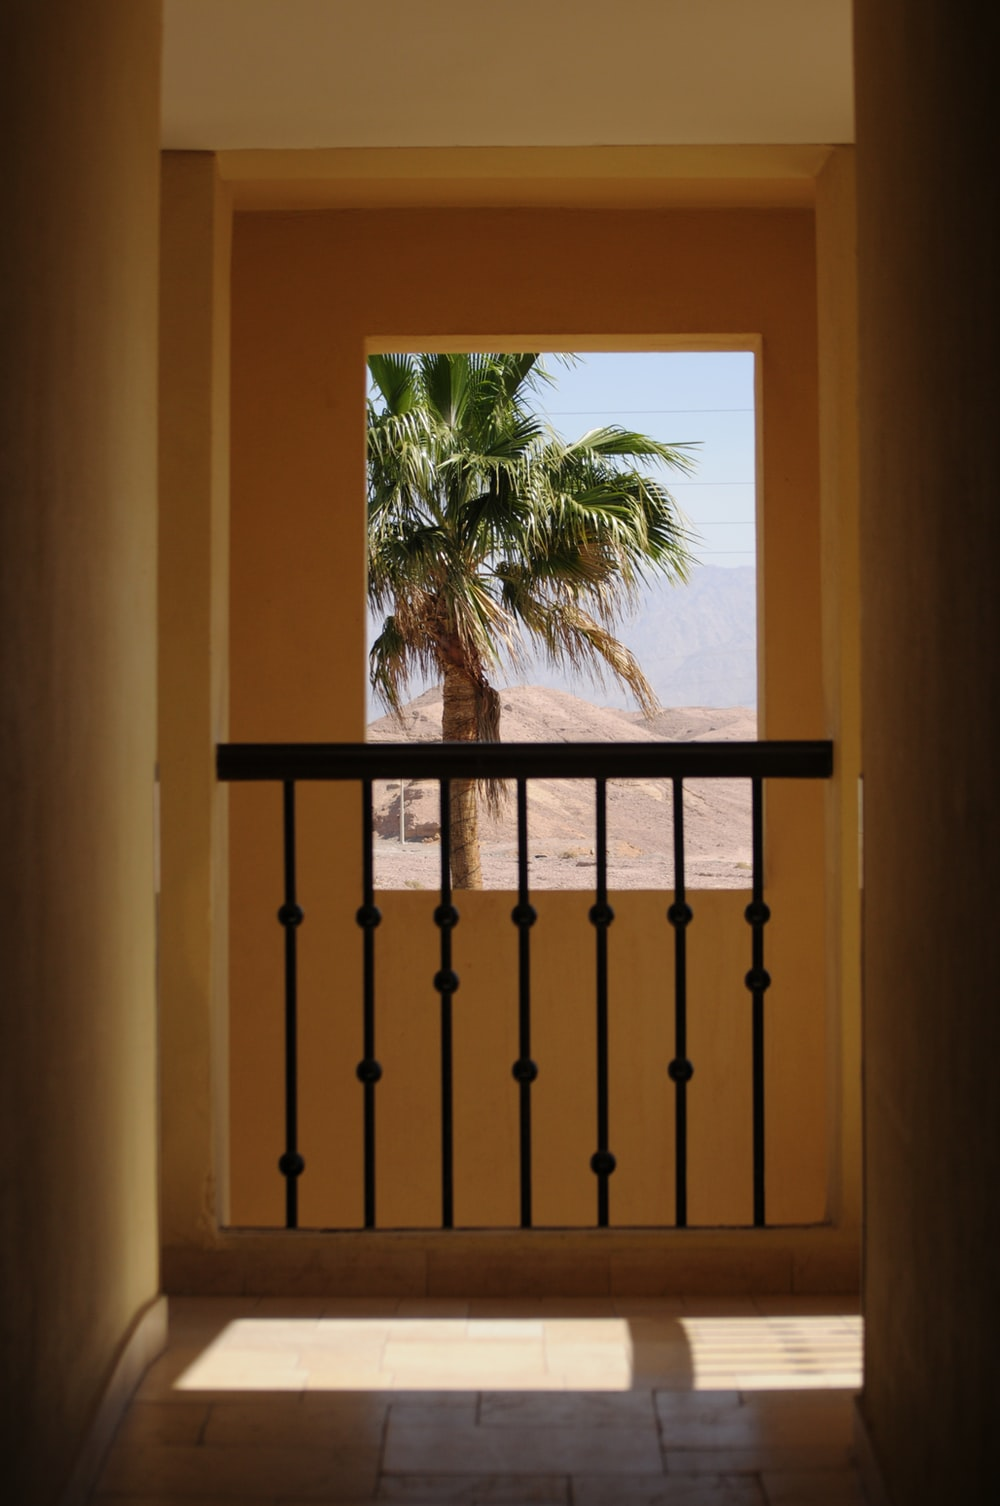 green palm tree near brown wooden fence